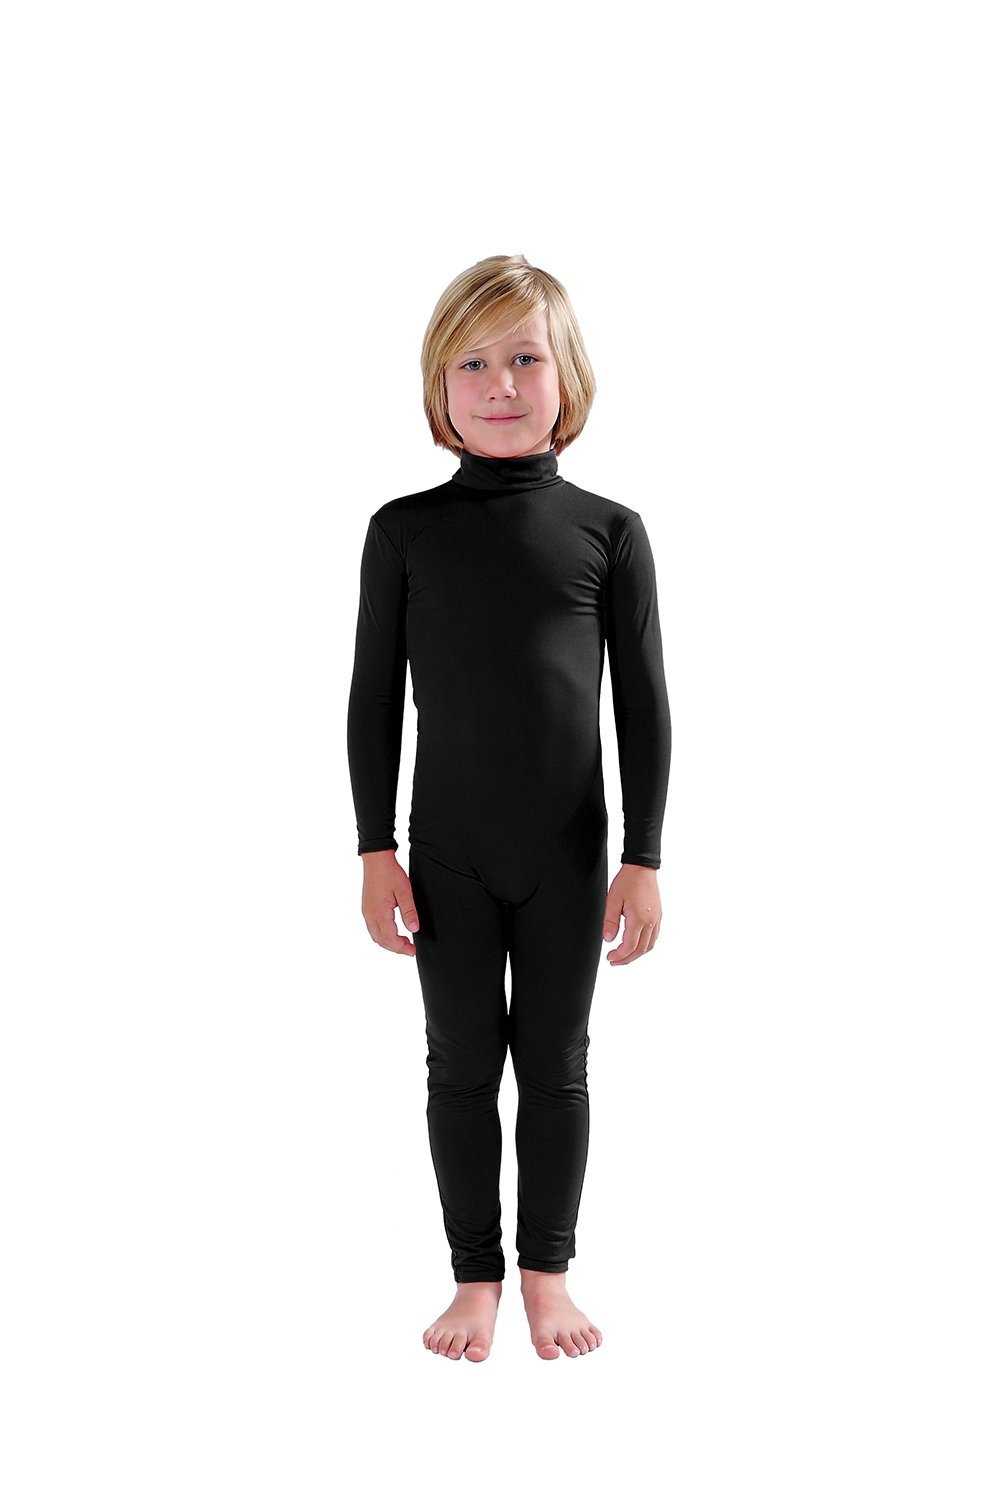 - 51kS8pTi7zL - Full Bodysuit Kids Dancewear Without Gloves and Socks Solid Color Lycra Spandex Zentai Child Unitard